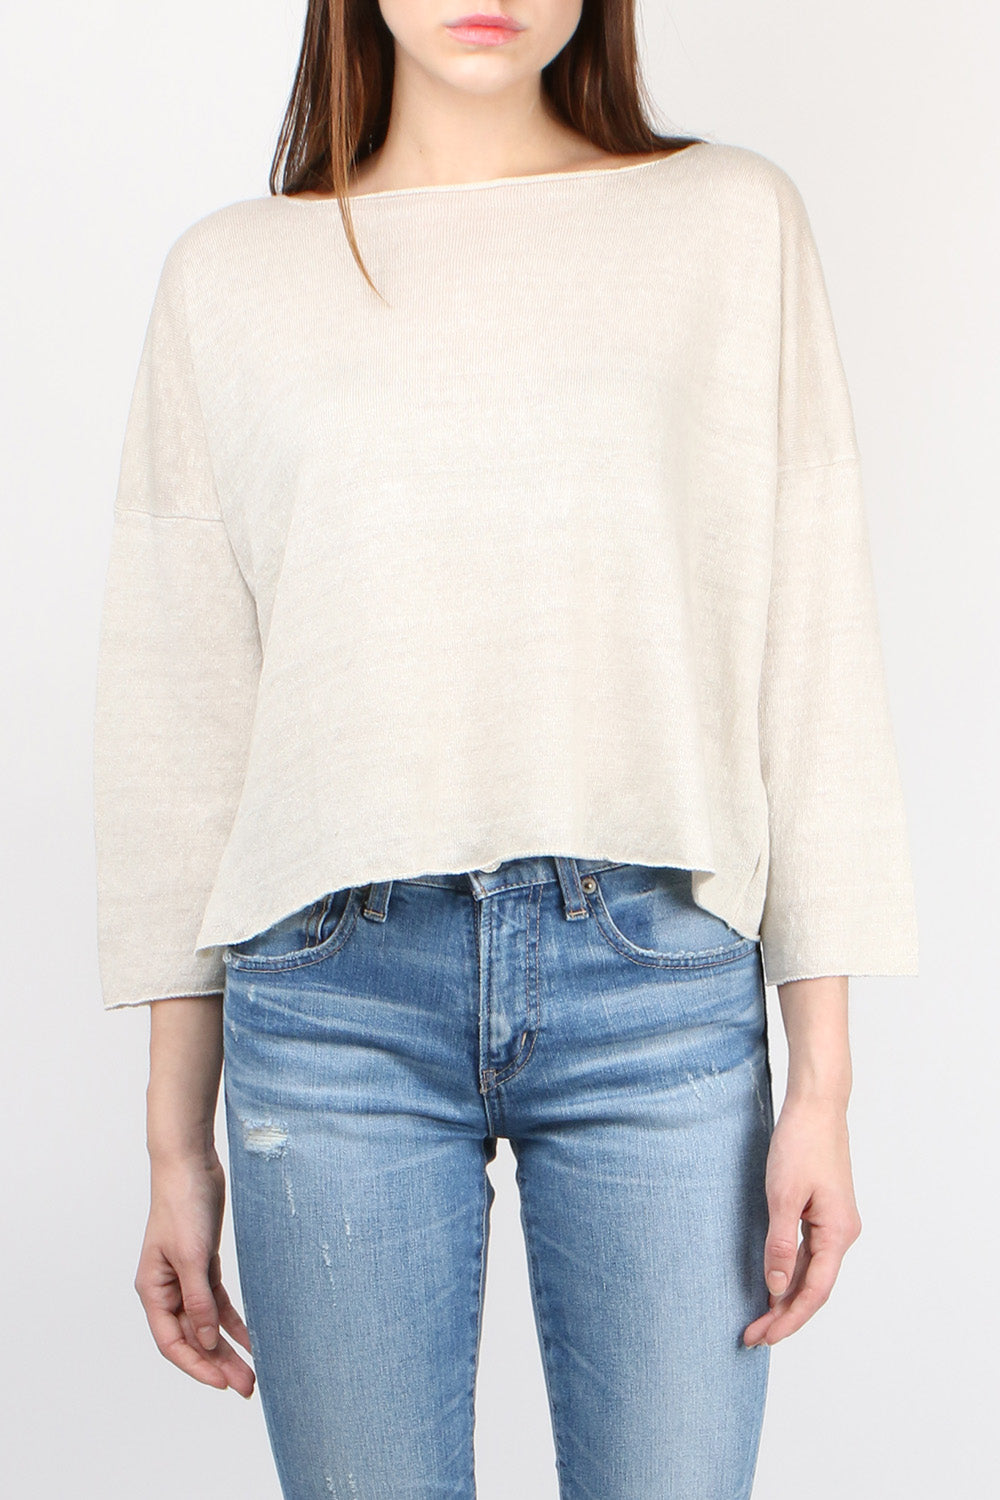 Evam Eva Linen Pullover in Antique White